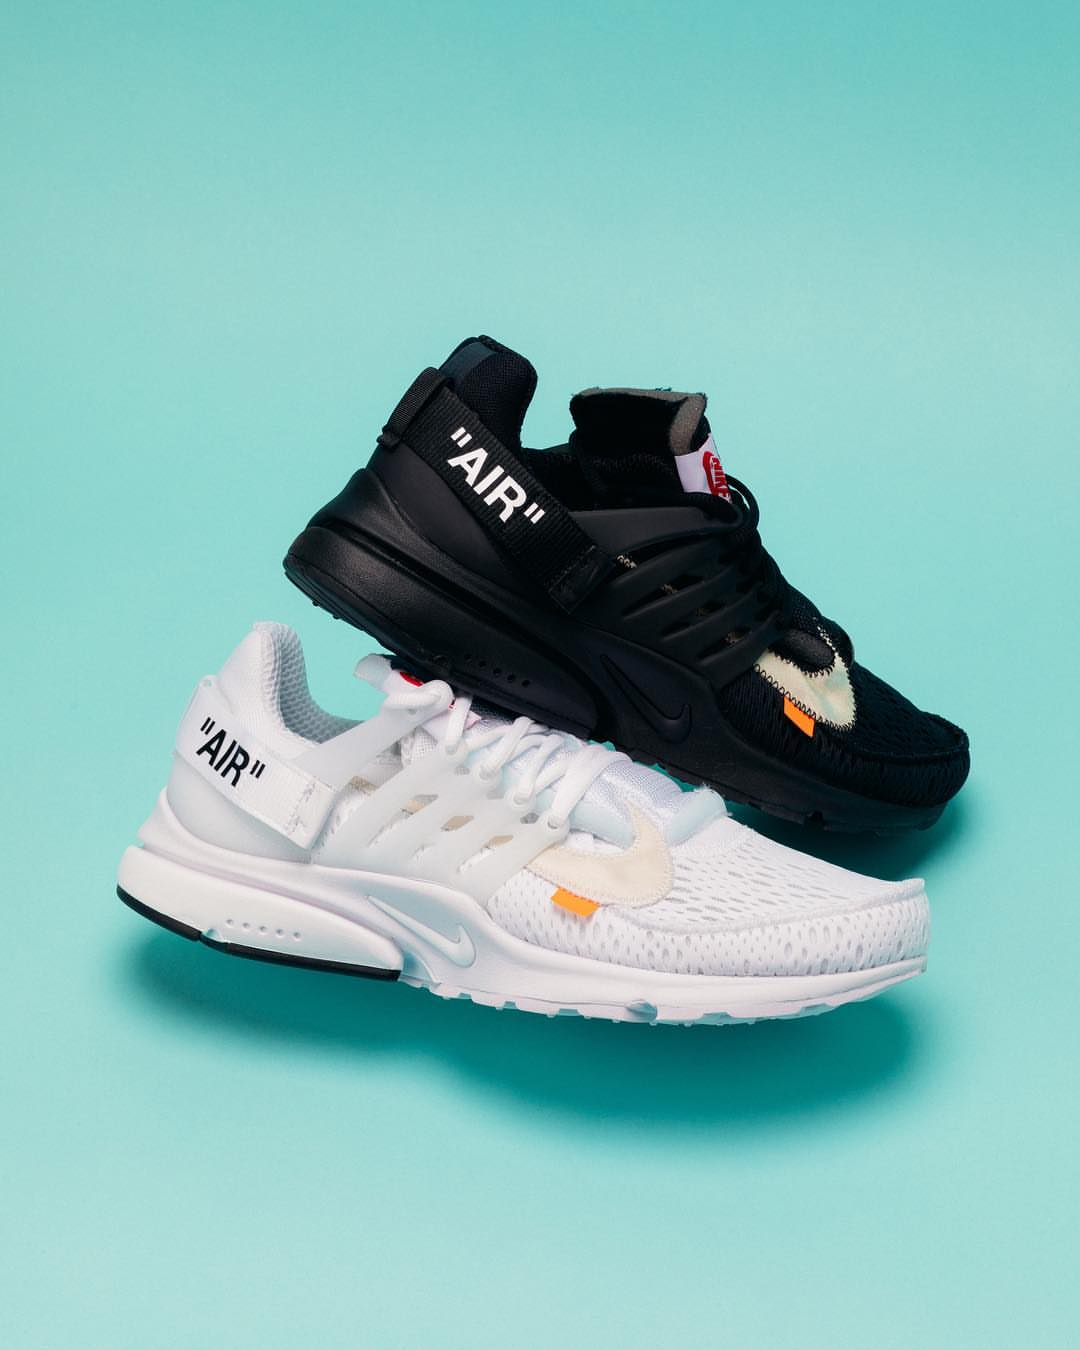 da978336cfbdb The Off-White x Nike Air Presto  How Will It Sell - StockX News